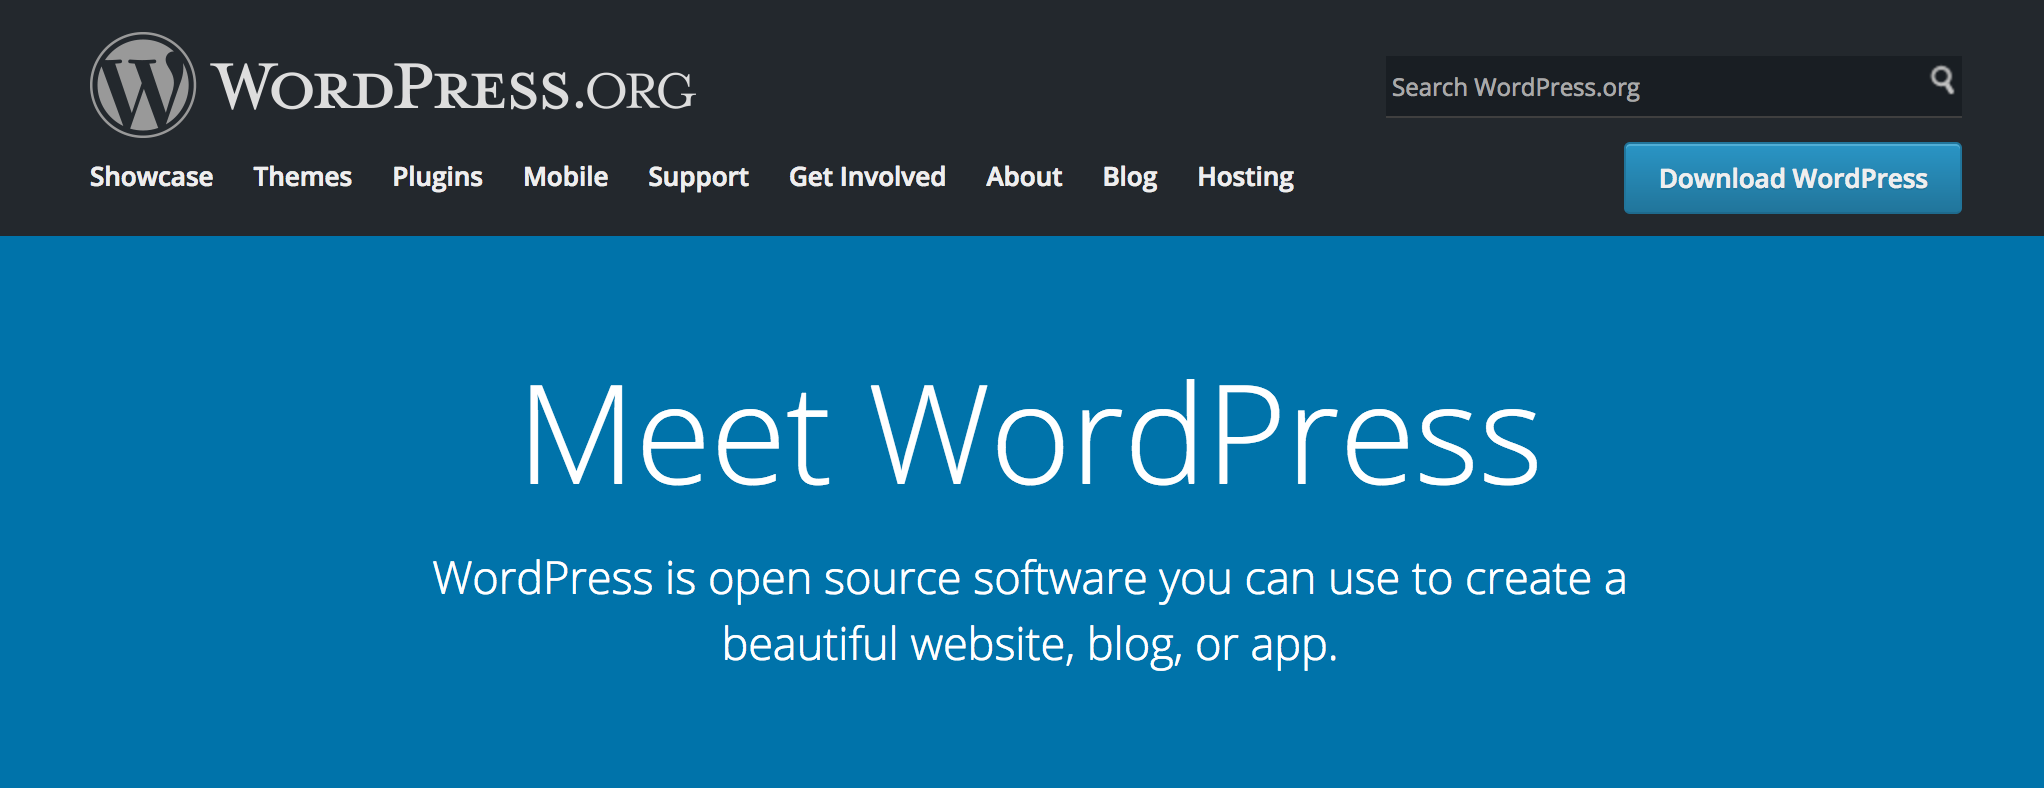 Wordpress.org - Blogging Platform